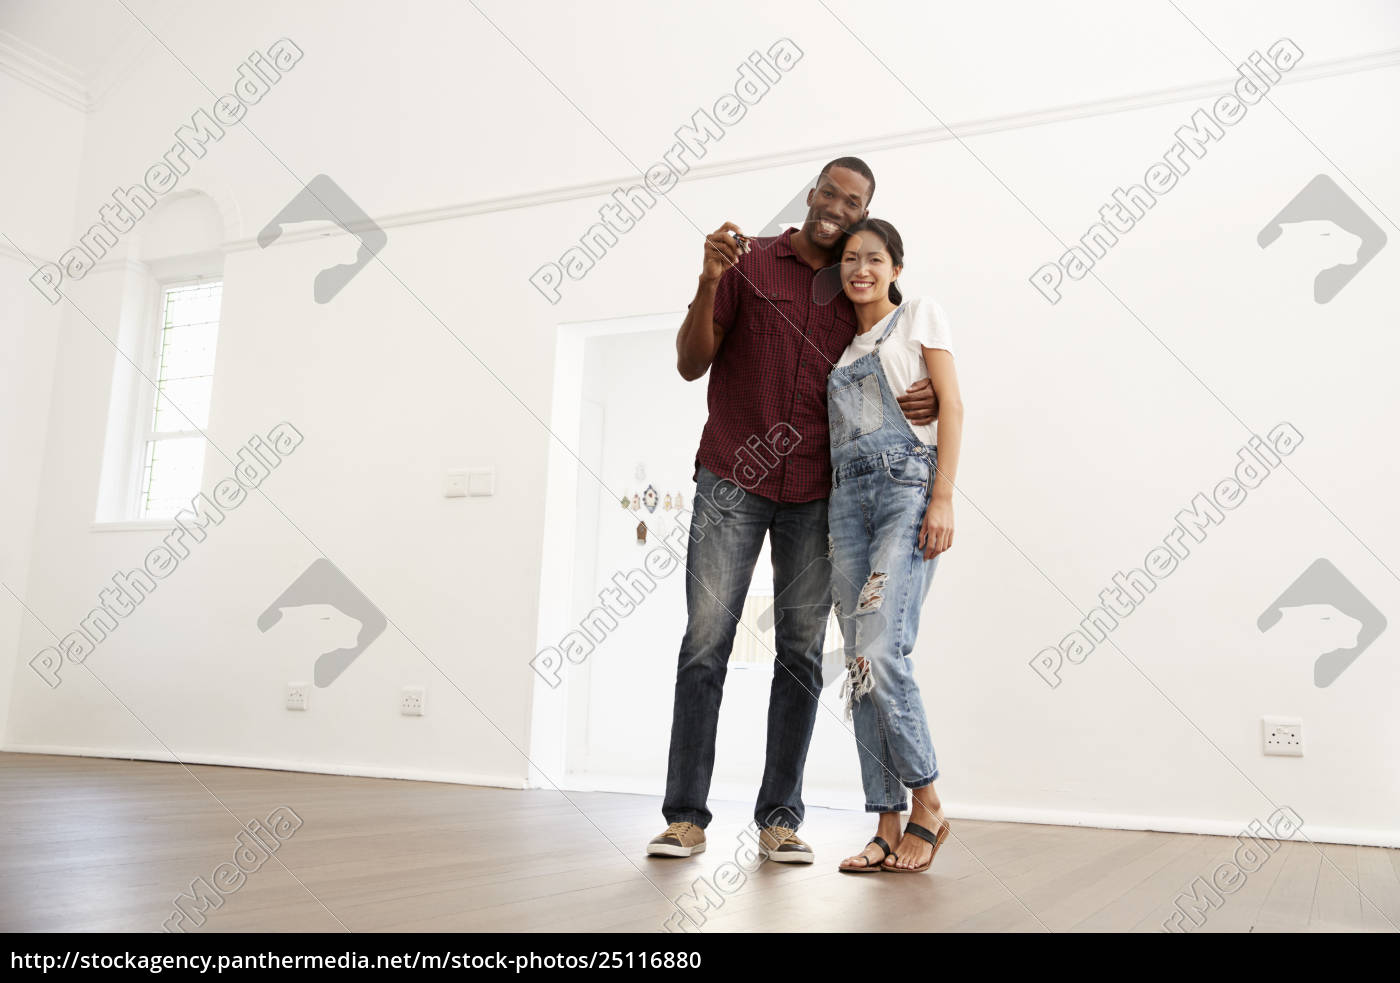 Royalty free photo 25116880 - Portrait Of Excited Young Couple Moving Into  New Home Together